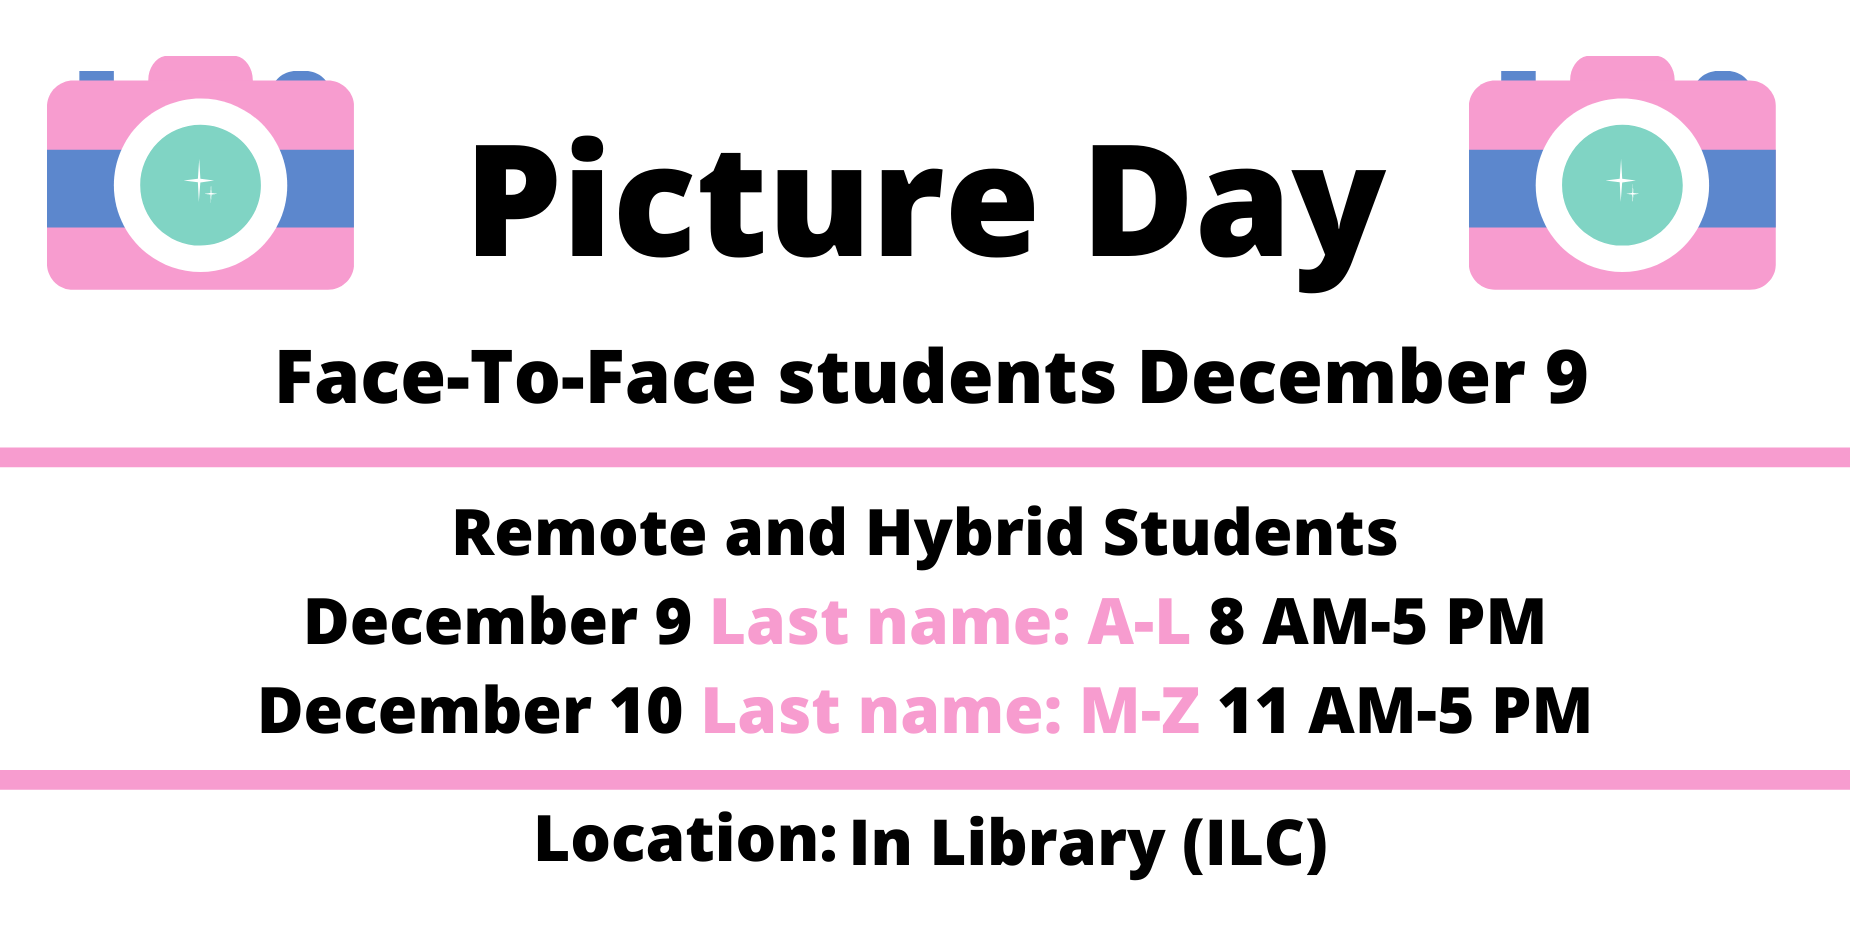 image shows cameras and picture day information